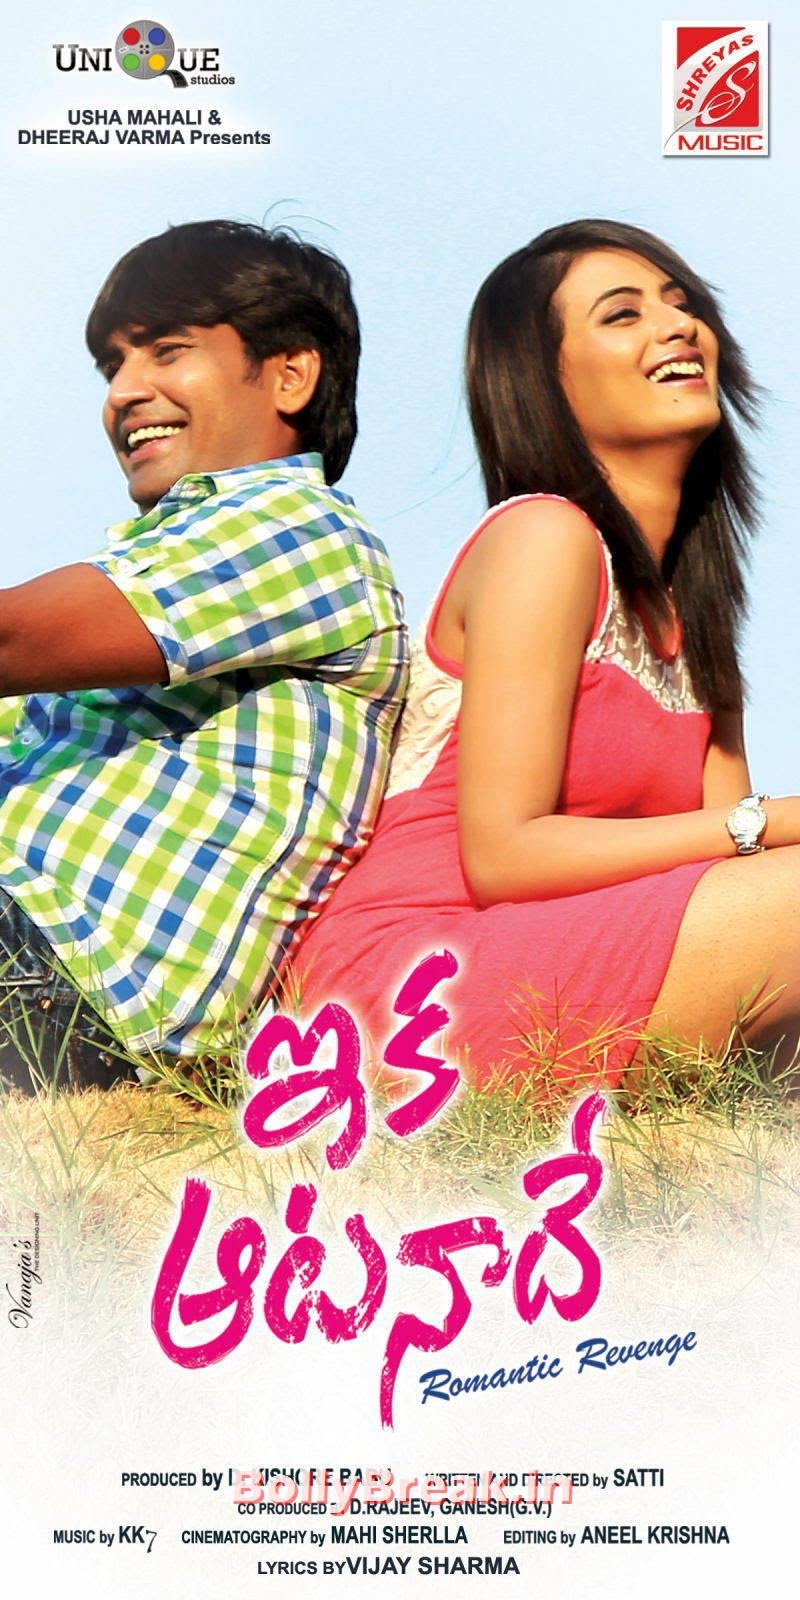 Anusha-Eka Aata Naade Telugu Movie Latest Posters, Actress Anusha Hot Posters From Movie Eka Aata Naade